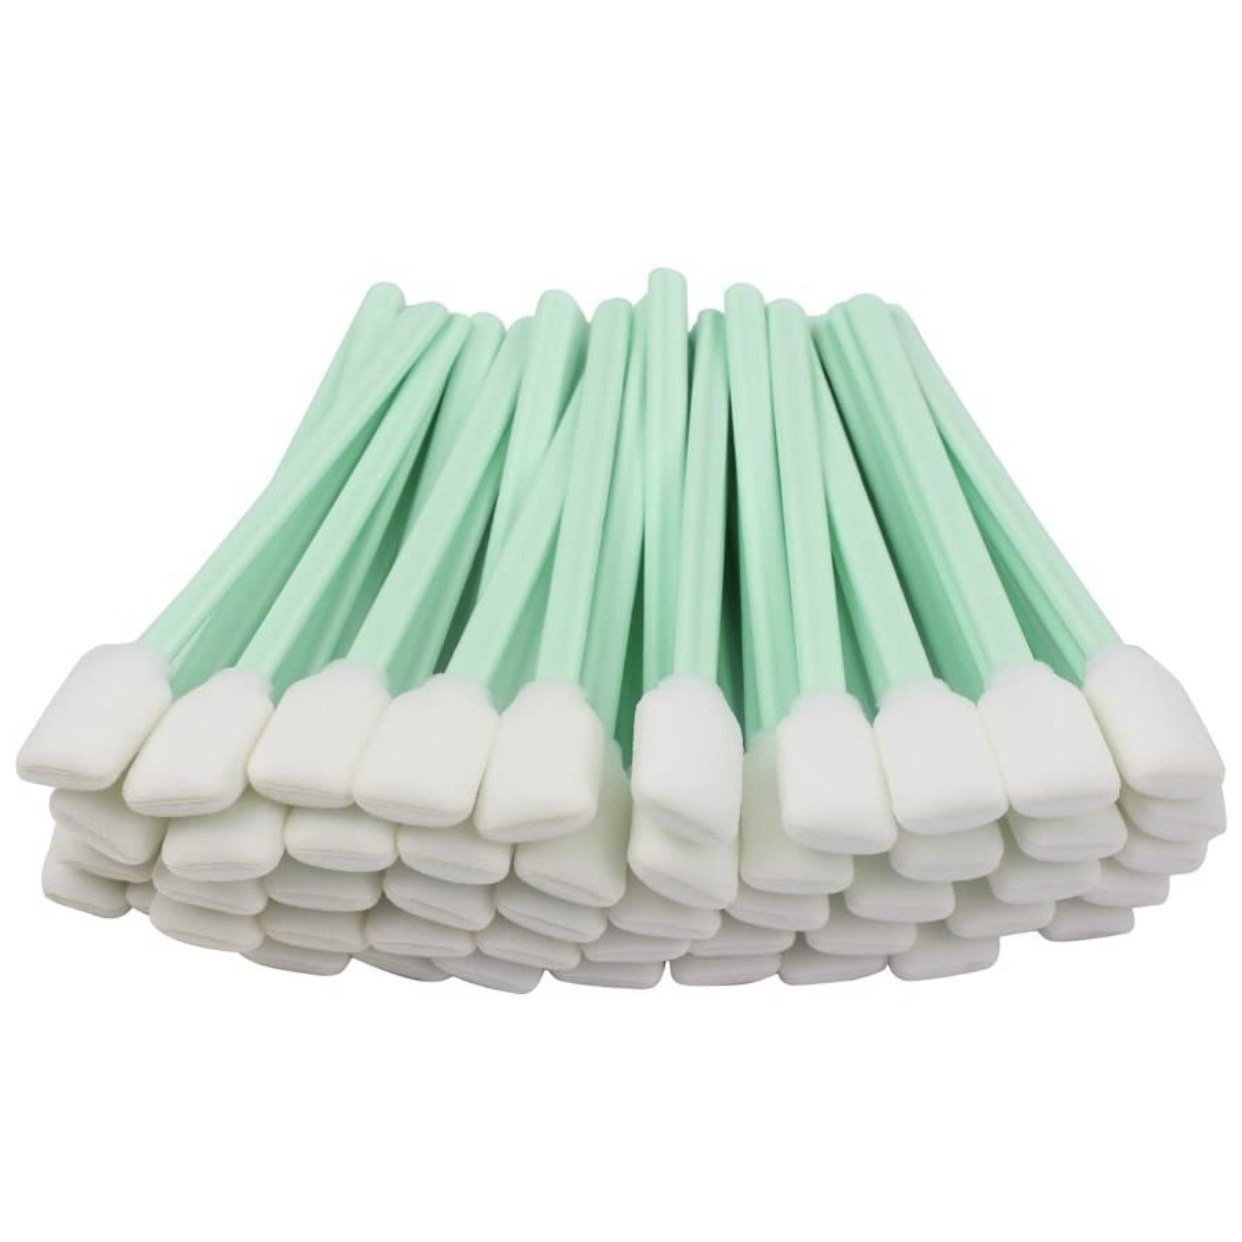 Cleaning Swabs (100 Pack) - Kingdom Tshirt